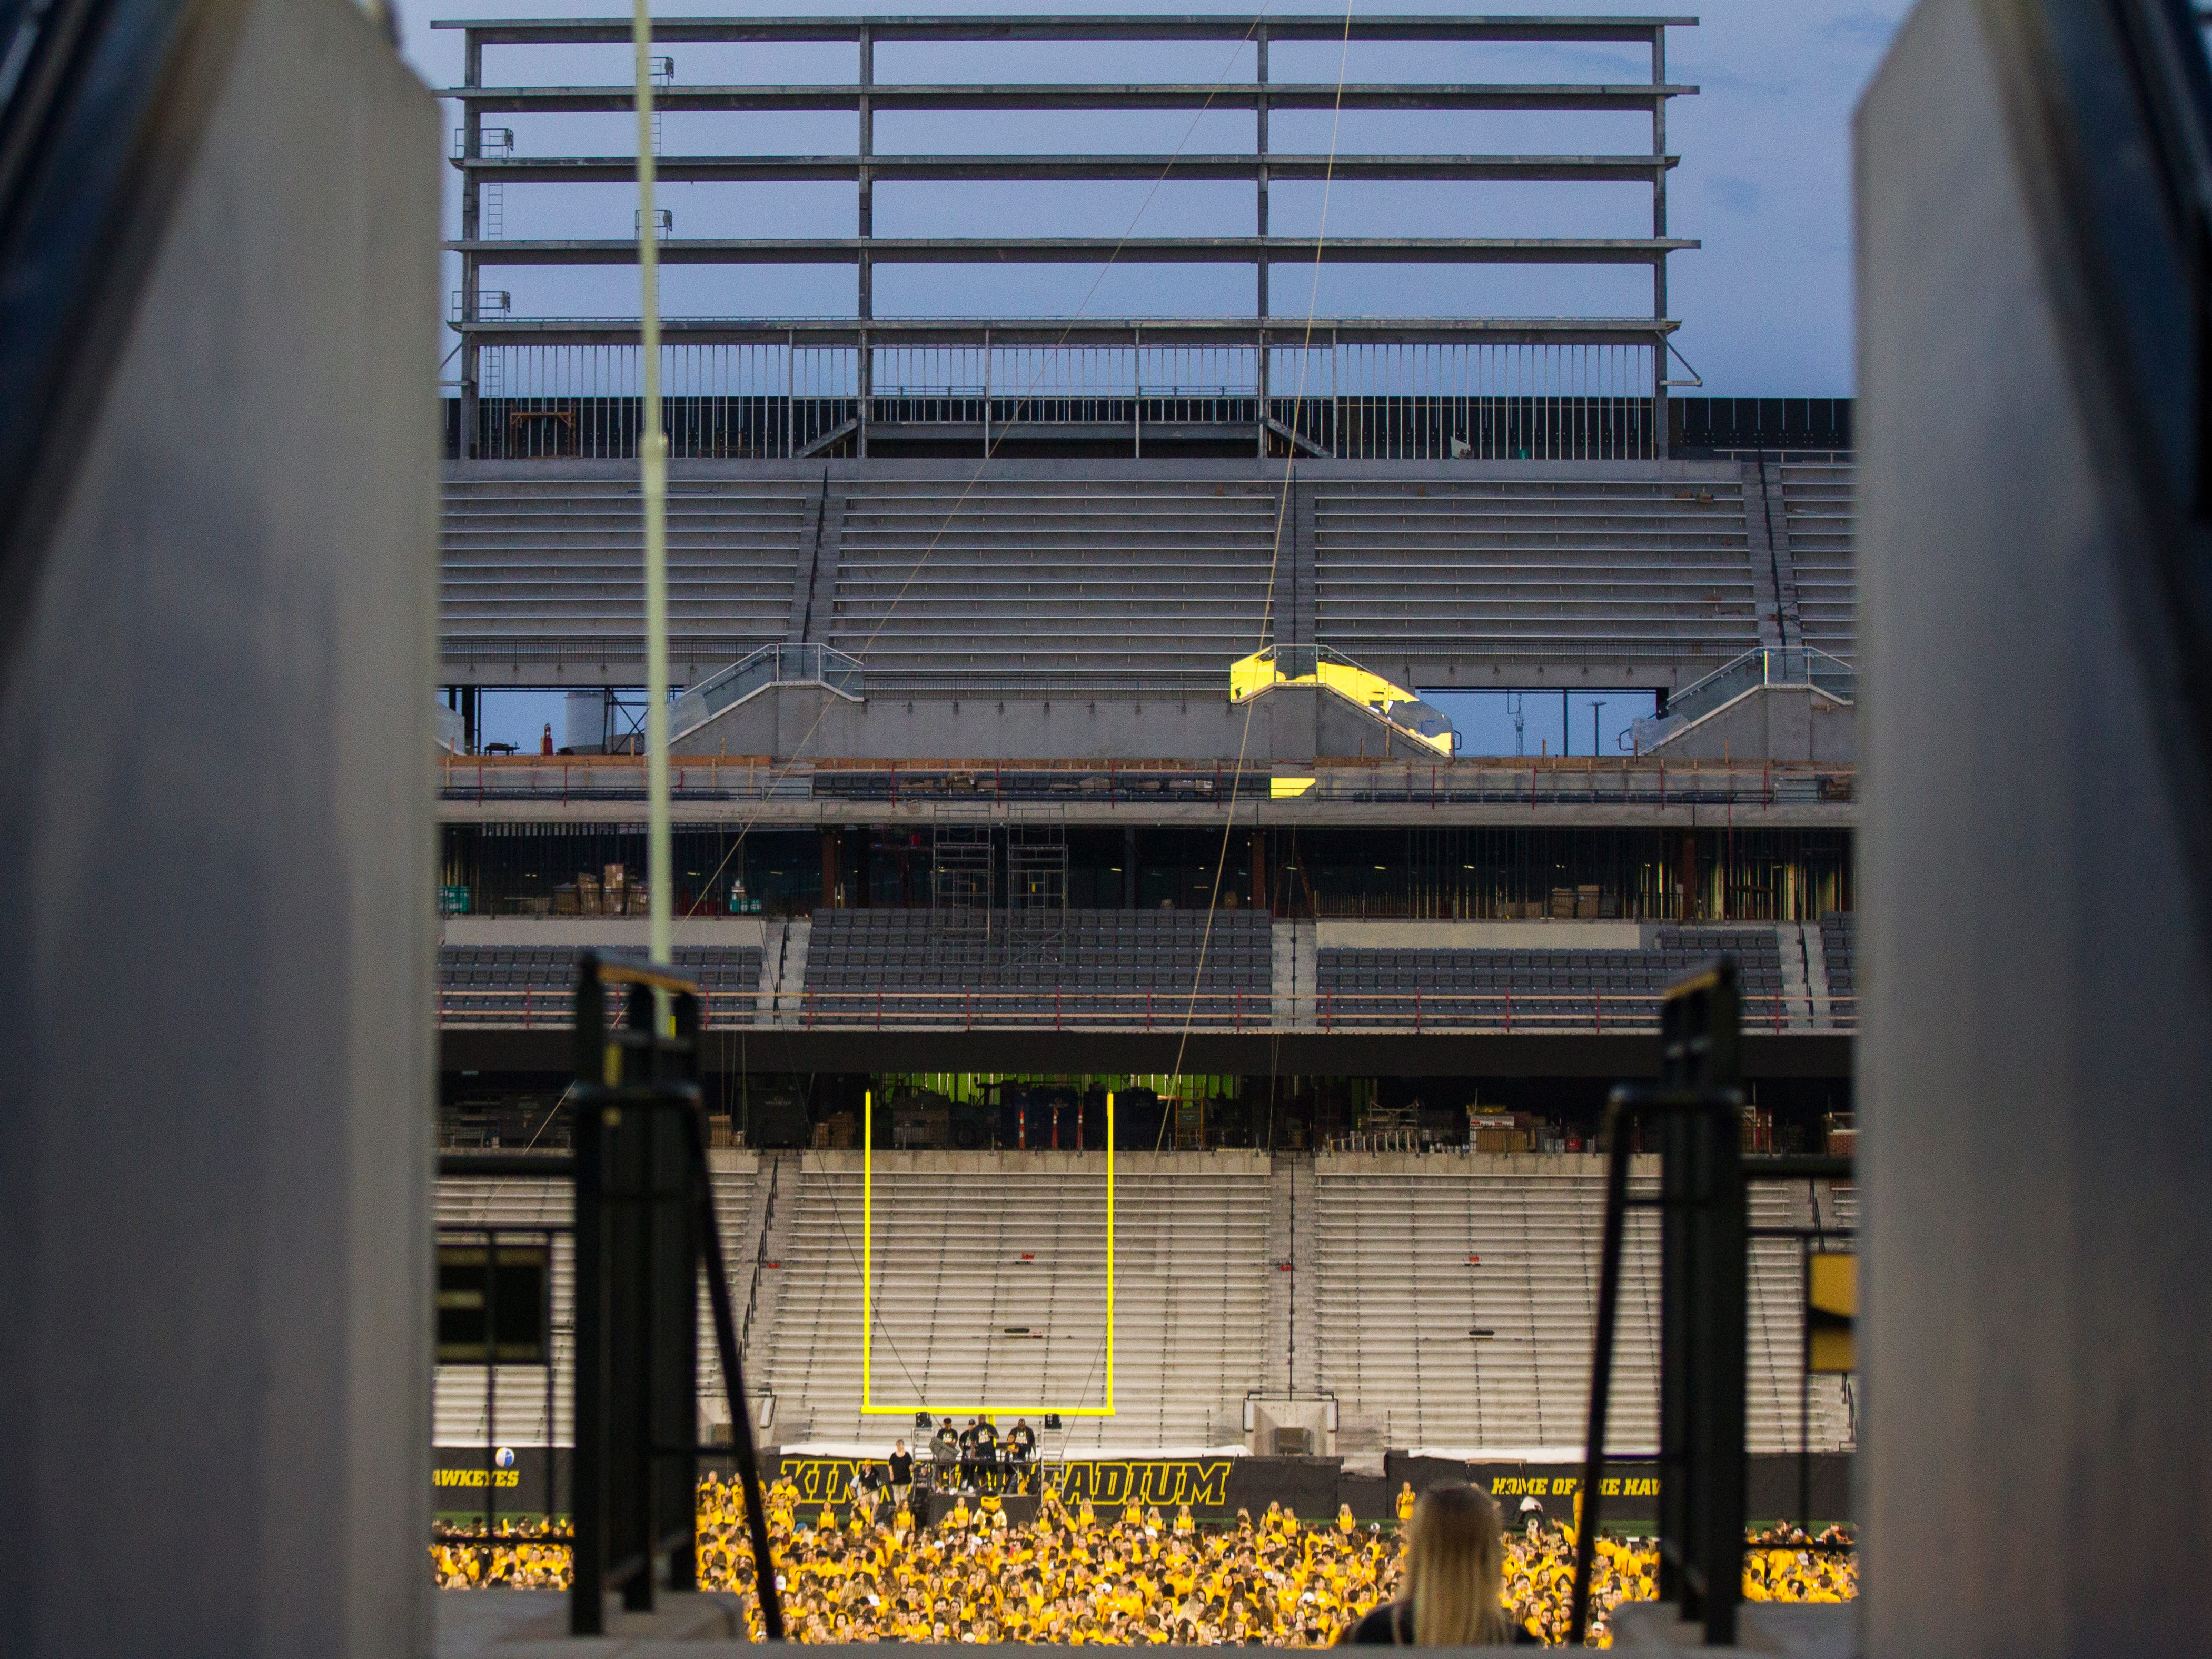 University of Iowa students gather during an OnIowa event on Friday, Aug. 17, 2018, at Kinnick Stadium in Iowa City. The annual Kickoff at Kinnick allows new students a chance to walk on the field for their class photo.